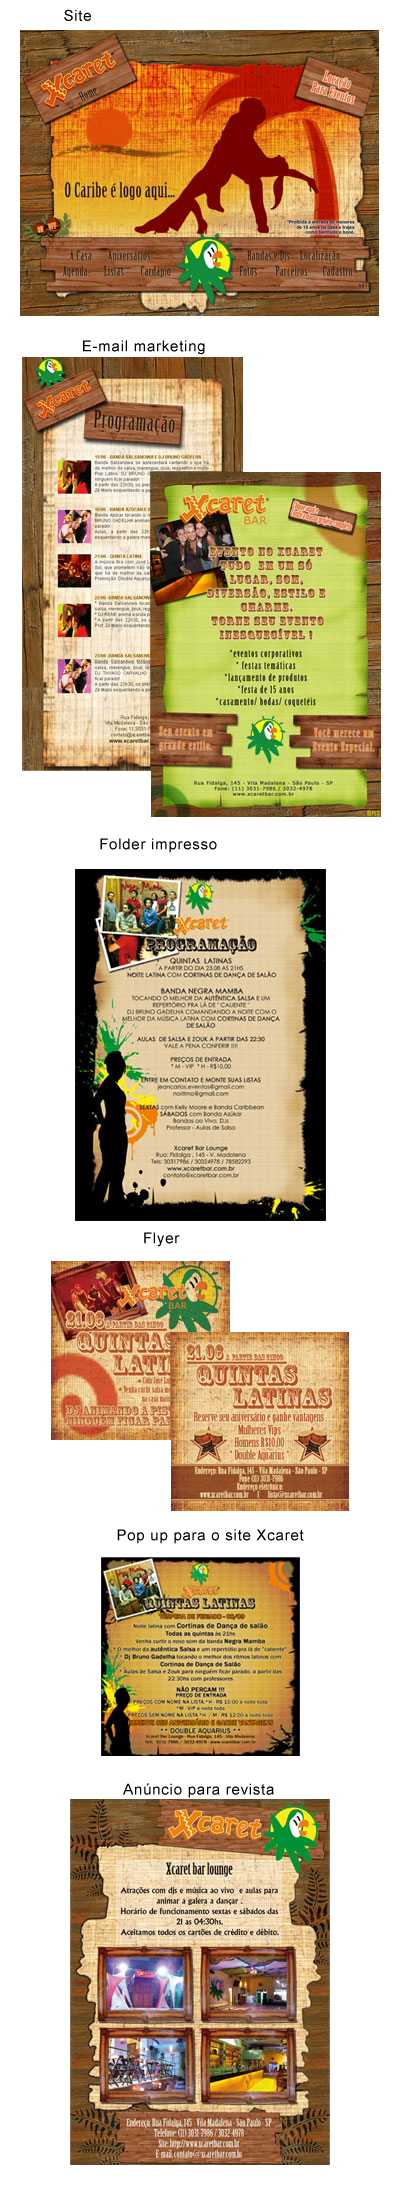 Identidade Visual Xcaret Bar Br3 Site sites cases image